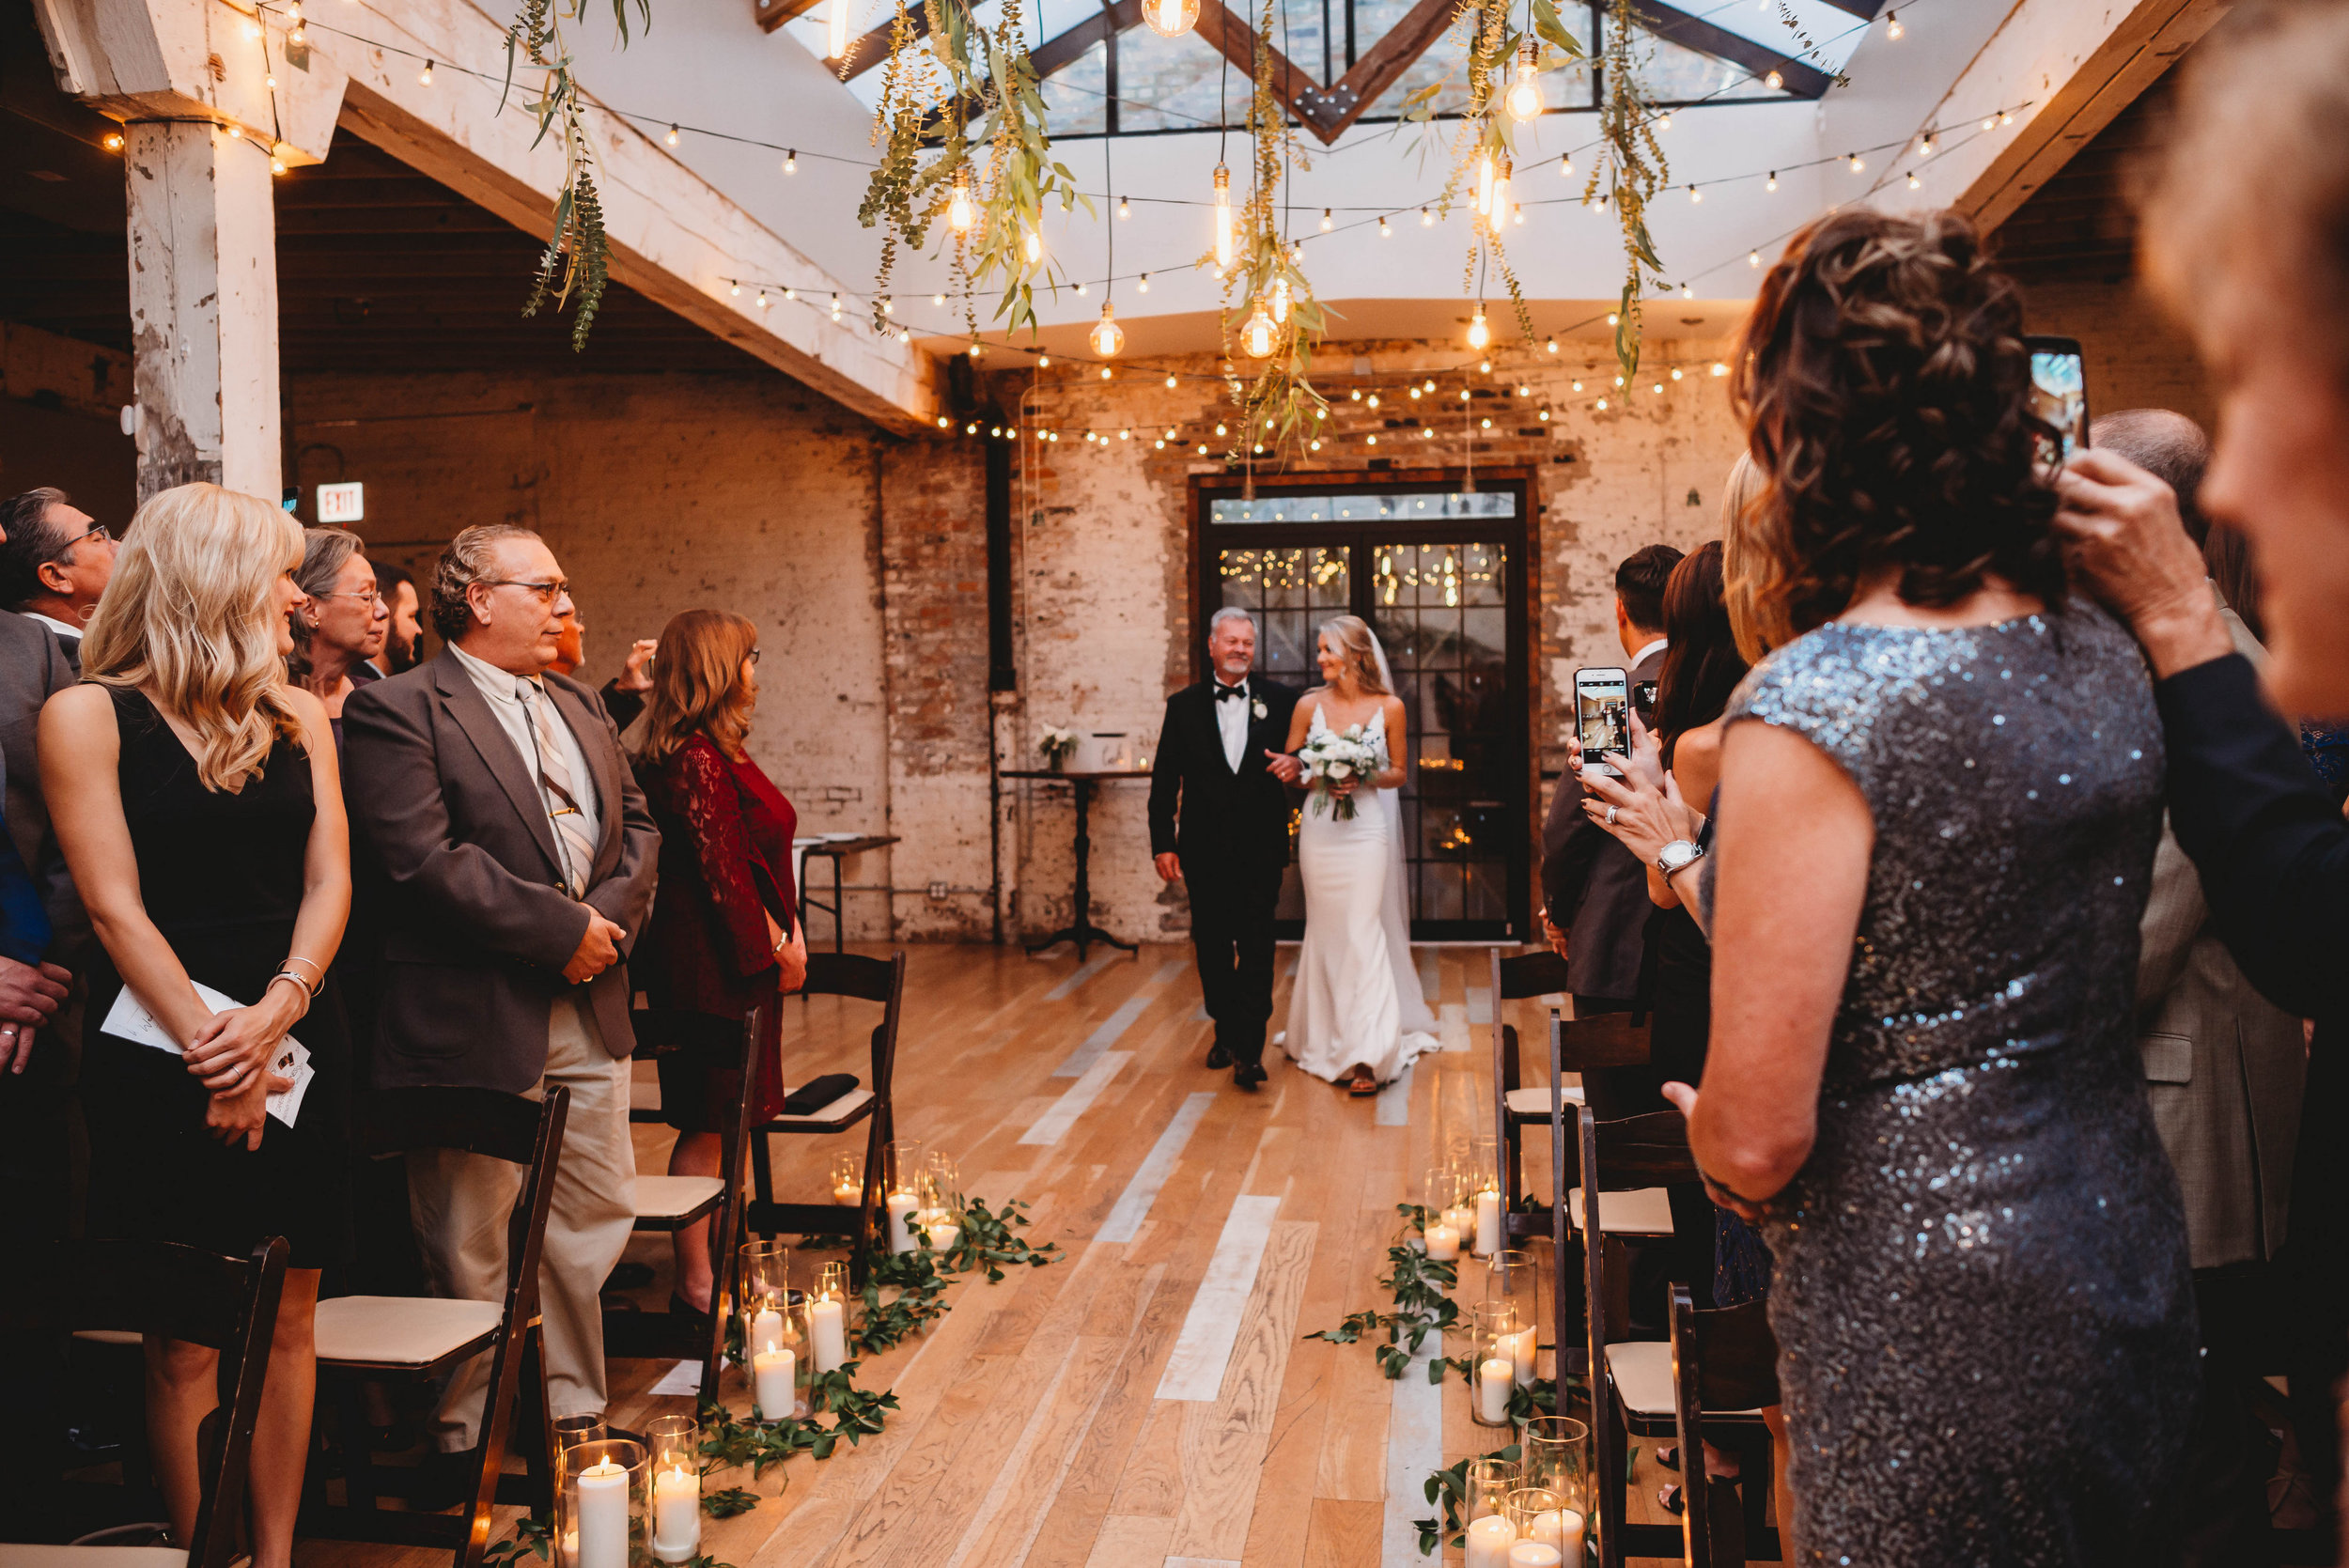 Copy of Elegant Chicago garden wedding at The Joinery captured by Girl with the Tattoos Fine Art Photographer. See more elegant wedding ideas at CHItheeWED.com!